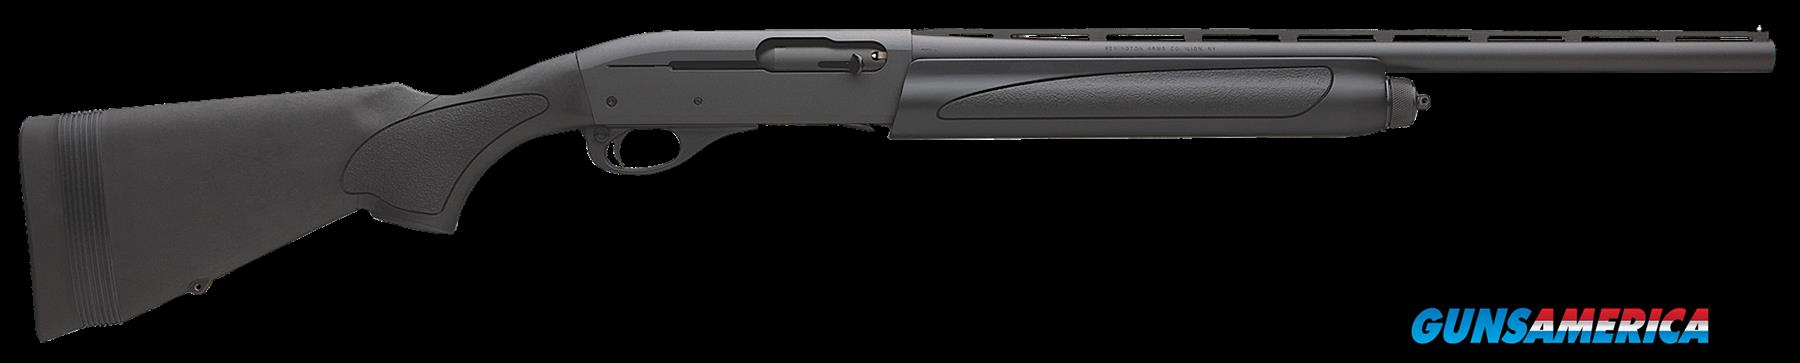 "Remington Firearms 83626 1187 Sportsman Compact Semi-Automatic 20 Gauge 21"" 3"" Black Synthetic Stk  Guns > Shotguns > R Misc Shotguns"